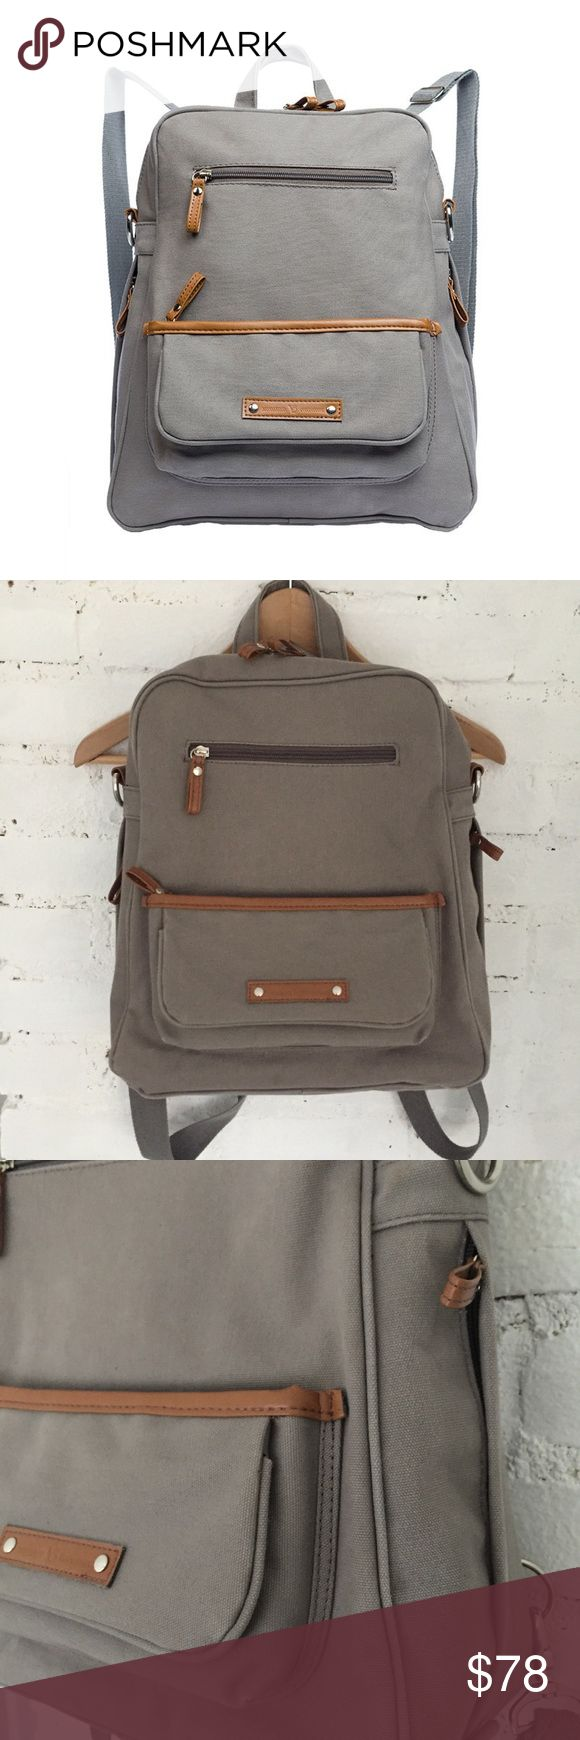 """Canvas Backpack Neutral backpack!!  This does not have to be a diaper bag. I bought it for my laptop but it's too small.  This is better for smaller laptops 💻  This is the Vilah Bloom """"Monroe-On-the-Go"""" Diaper Bag ⚪️ Windy City gray color ⚪️ """"heavy duty canvas that is reinforced with matte foil for extra water protection! ...ability to change from backpack to crossbody and the built in wipe dispenser"""" — info from Bump Box website ⚪️ EUC, tiny spot on backside ⚪️ Vegan leather trim ⚪️ 12"""" L…"""